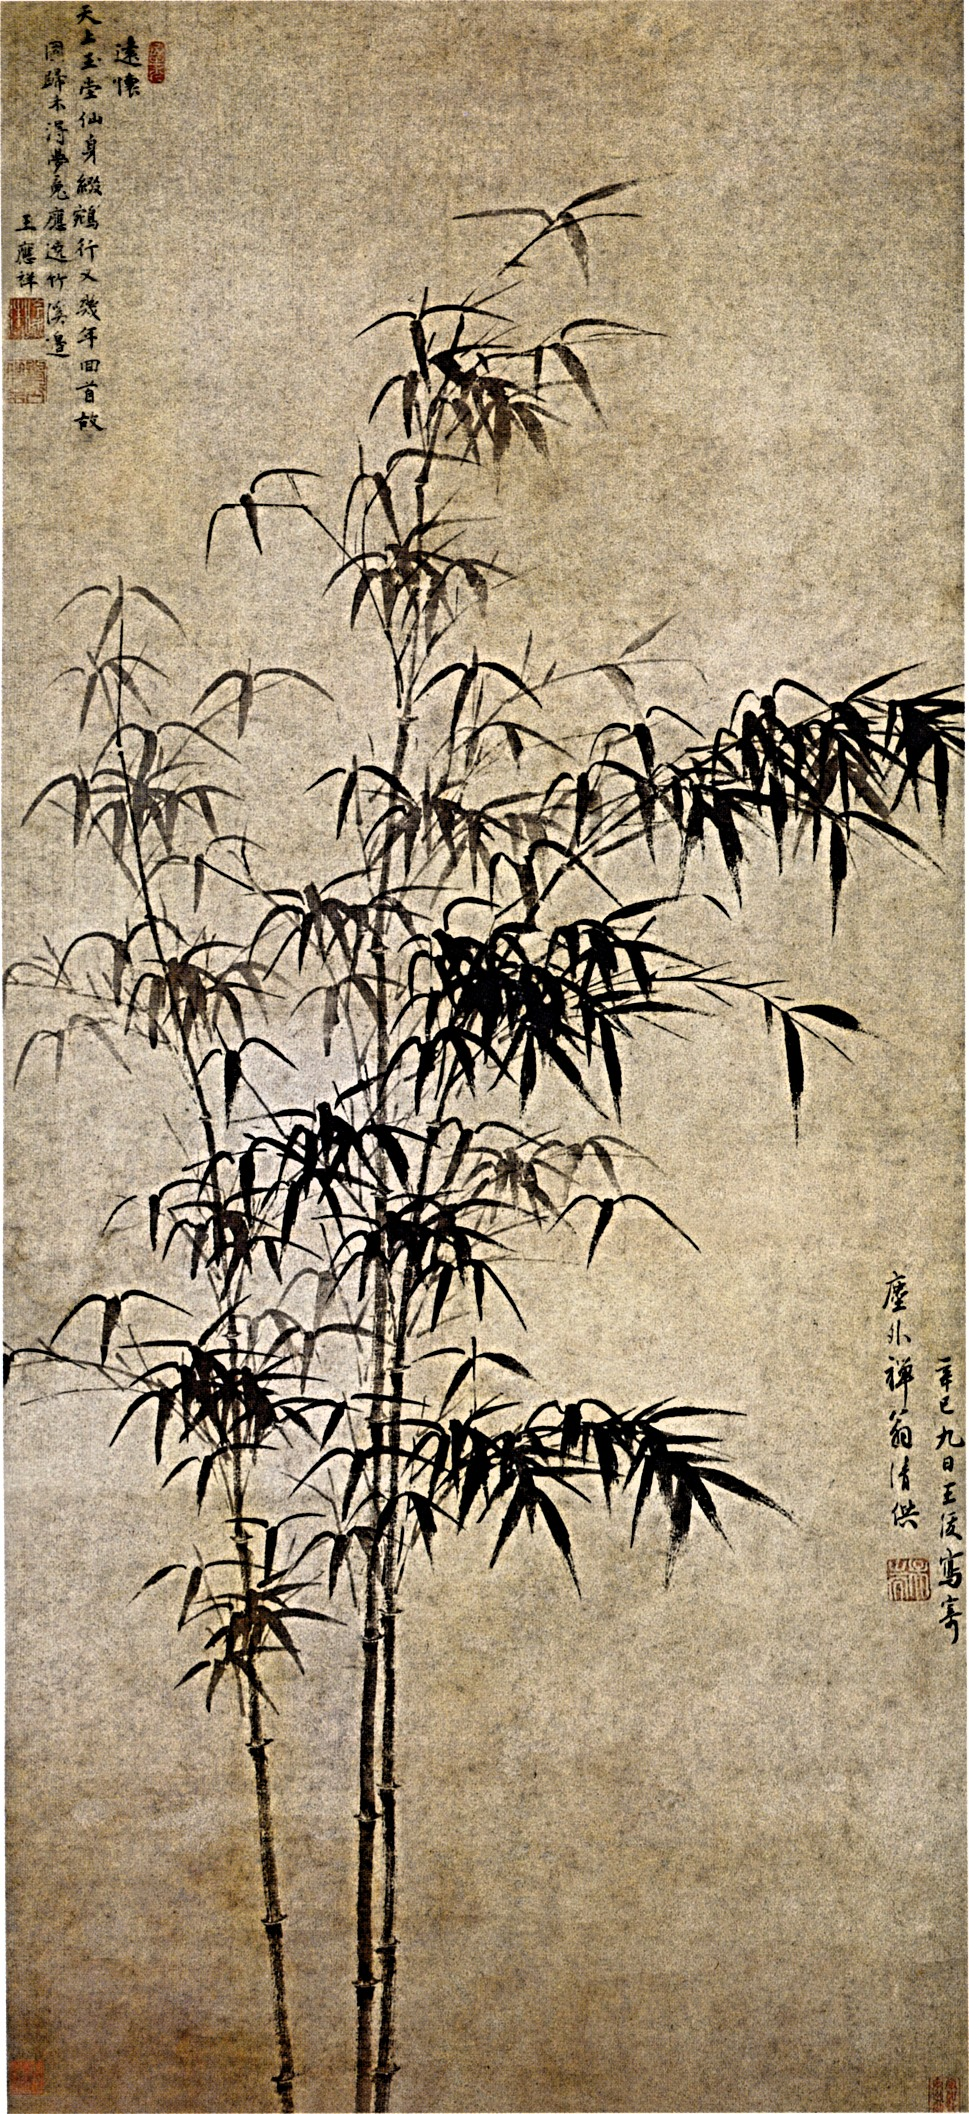 Wang Fu Painter Wikipedia